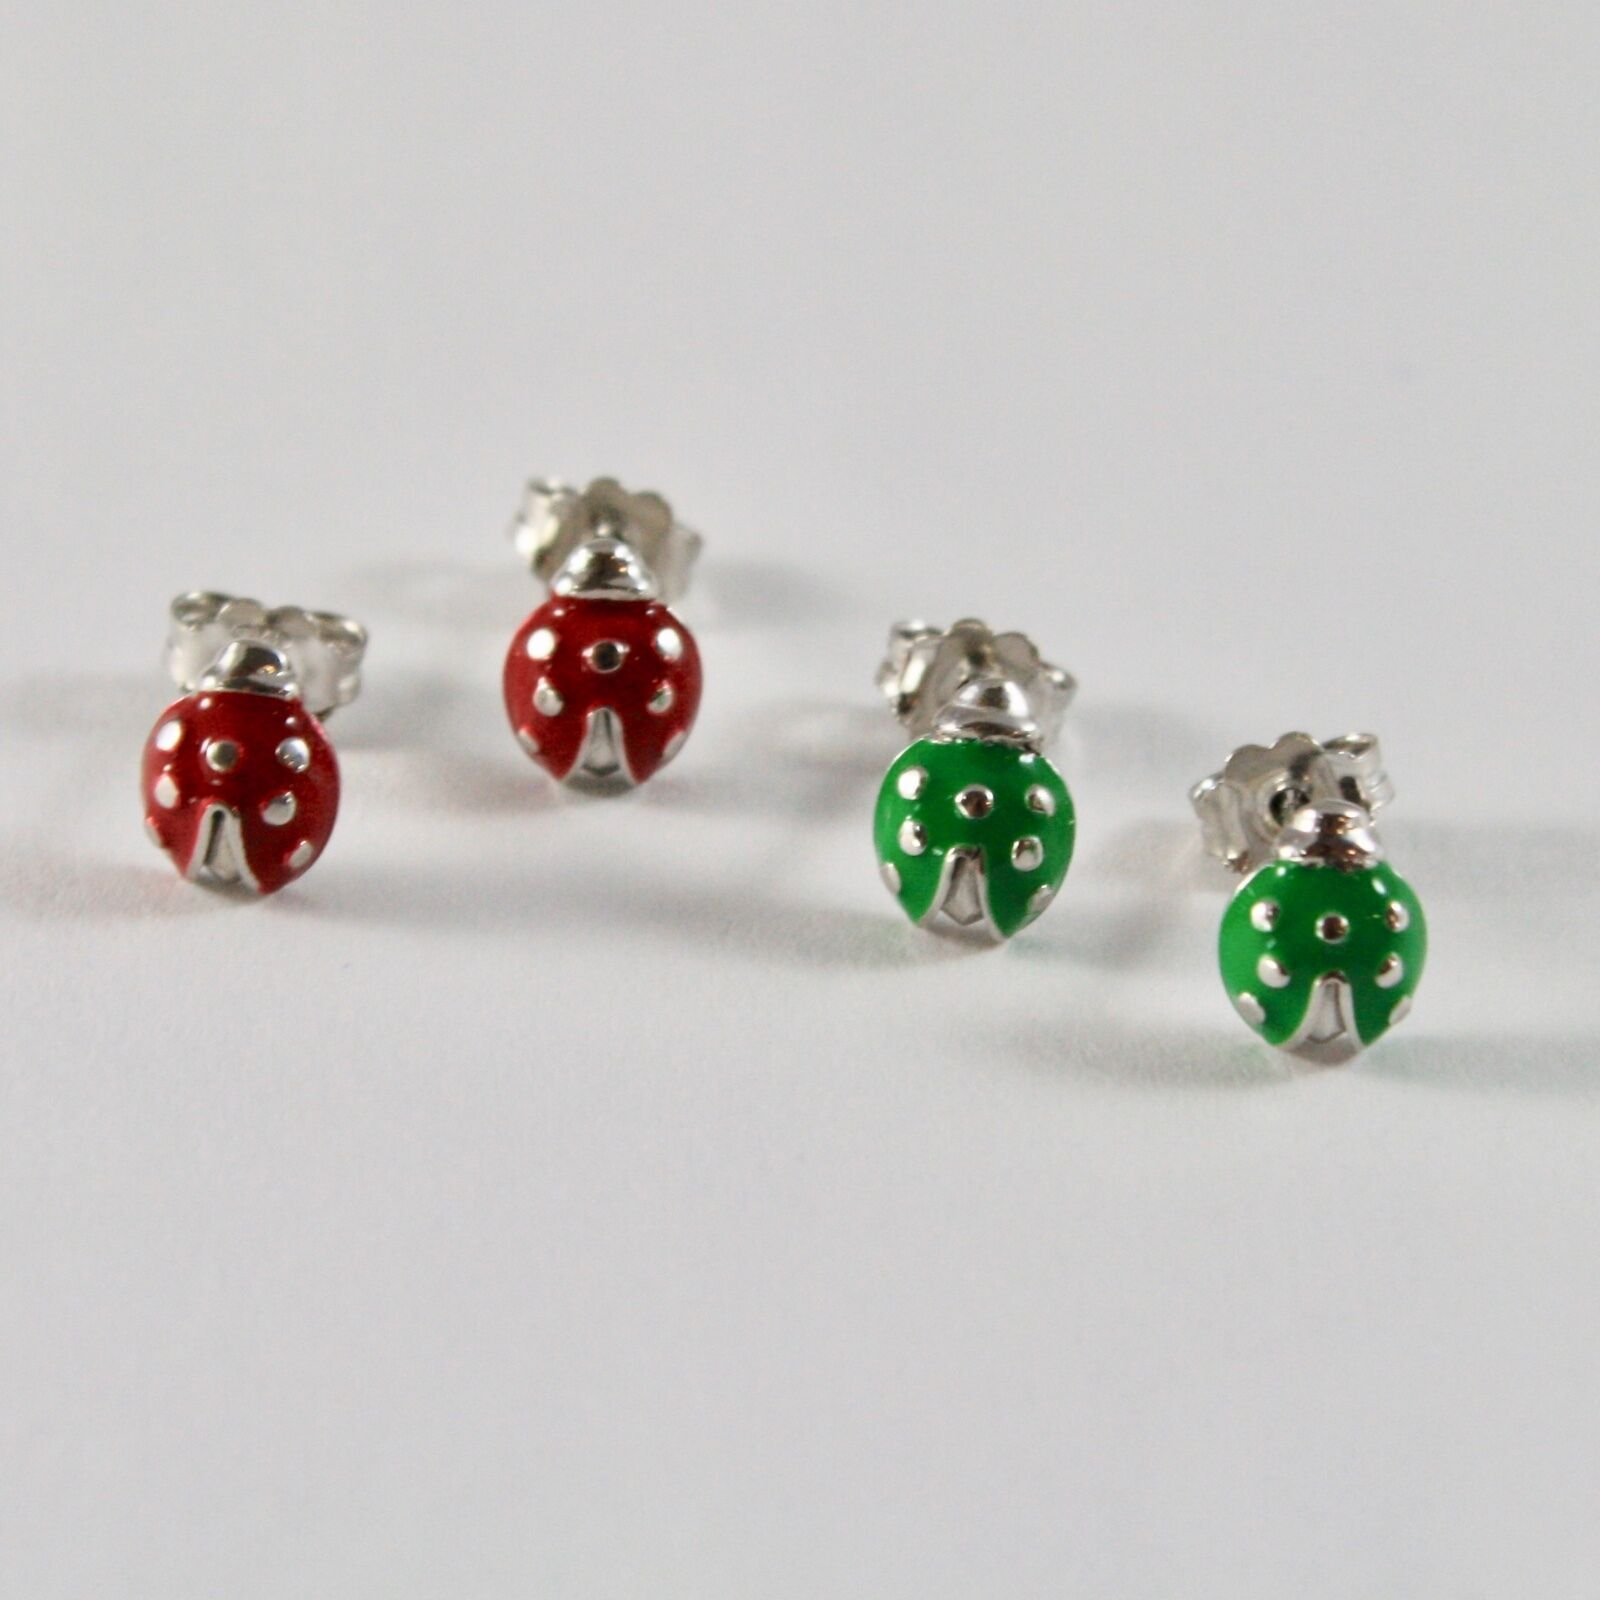 Silver Earrings 925 Jack&co with Ladybug Enamelled Red or Green